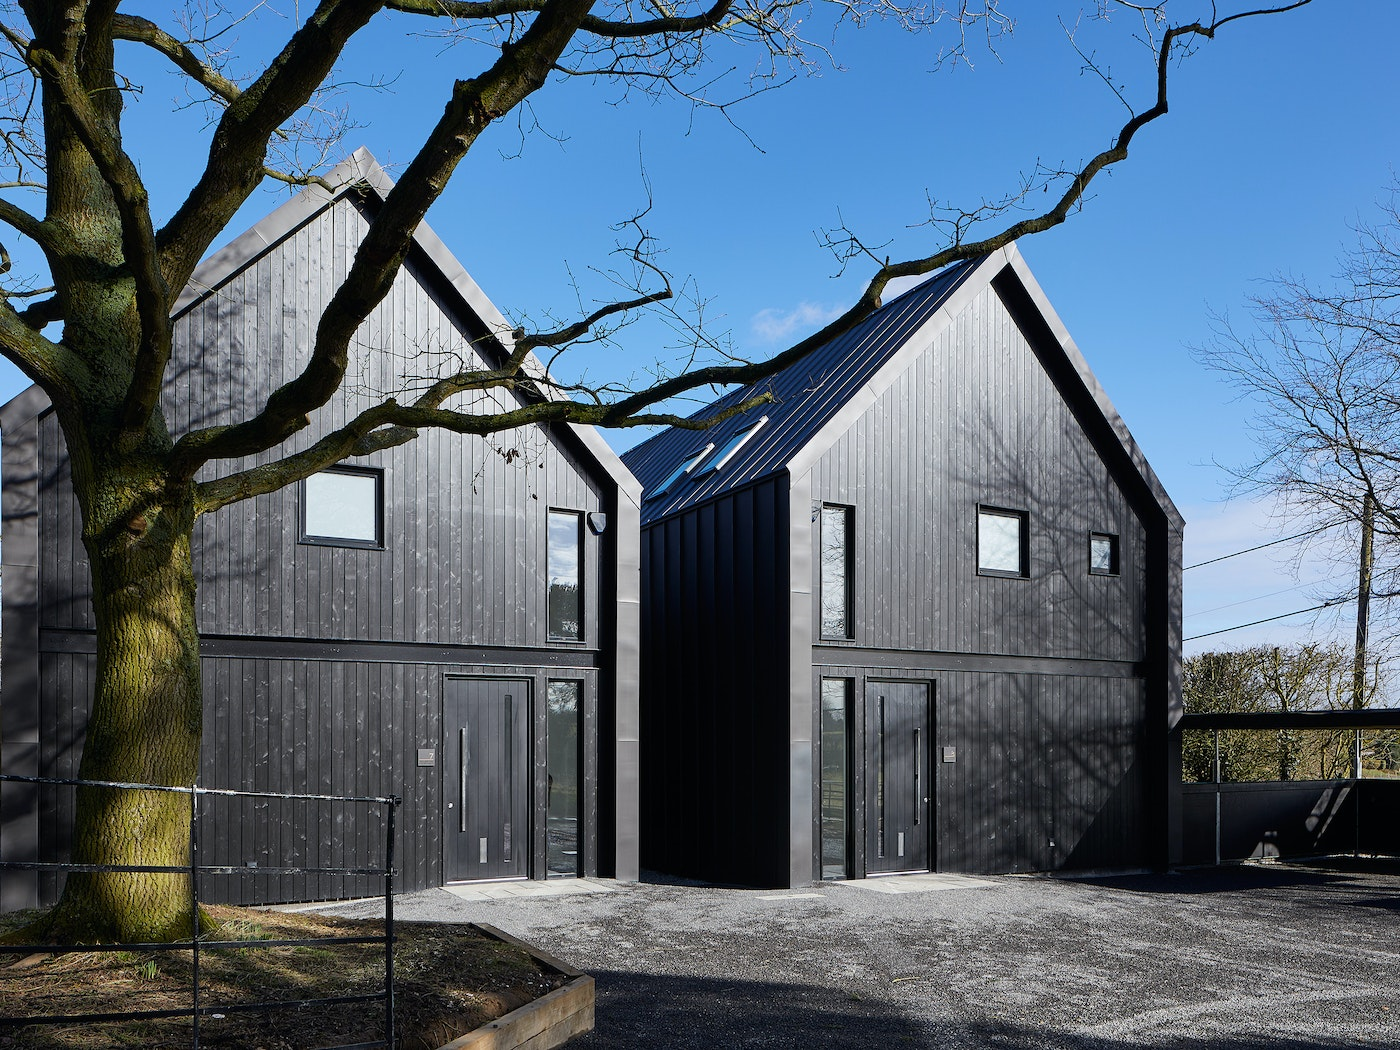 These contemporary houses were designed to mimic farm buildings, complete with black cladding & black exterior doors